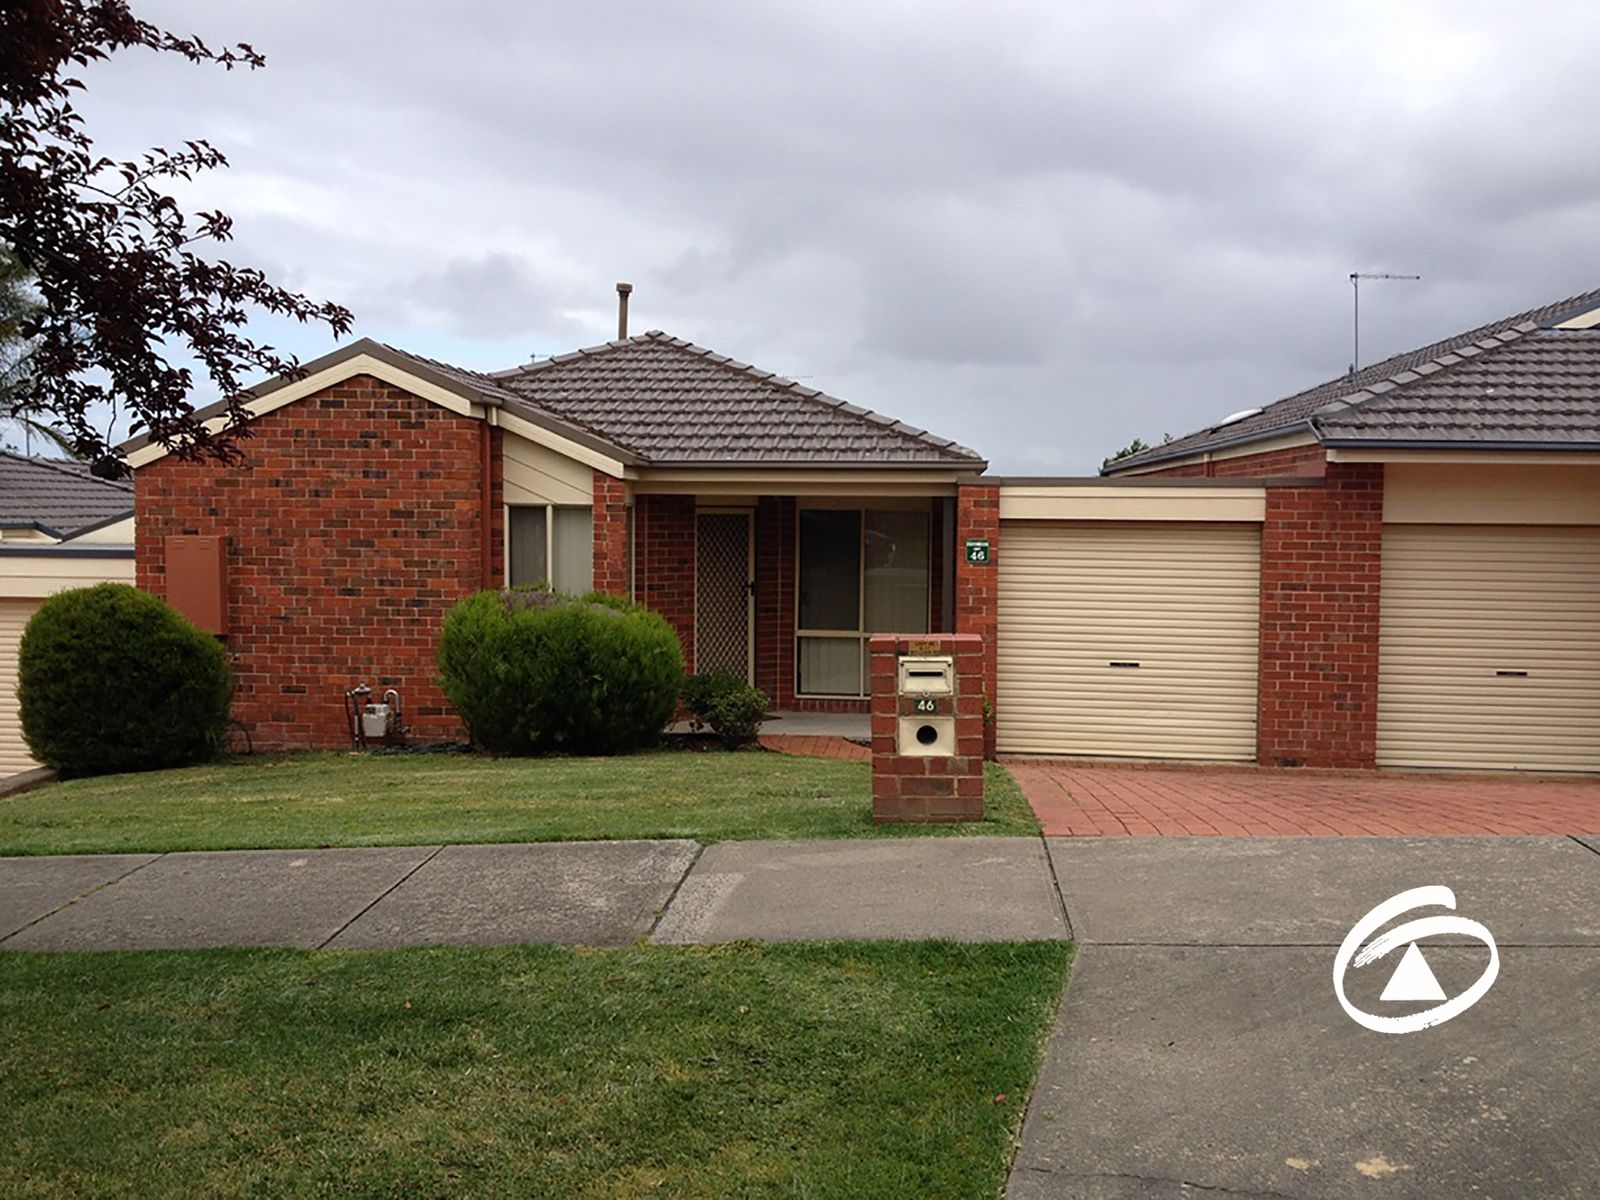 46/5-17 William Road, Berwick, VIC 3806